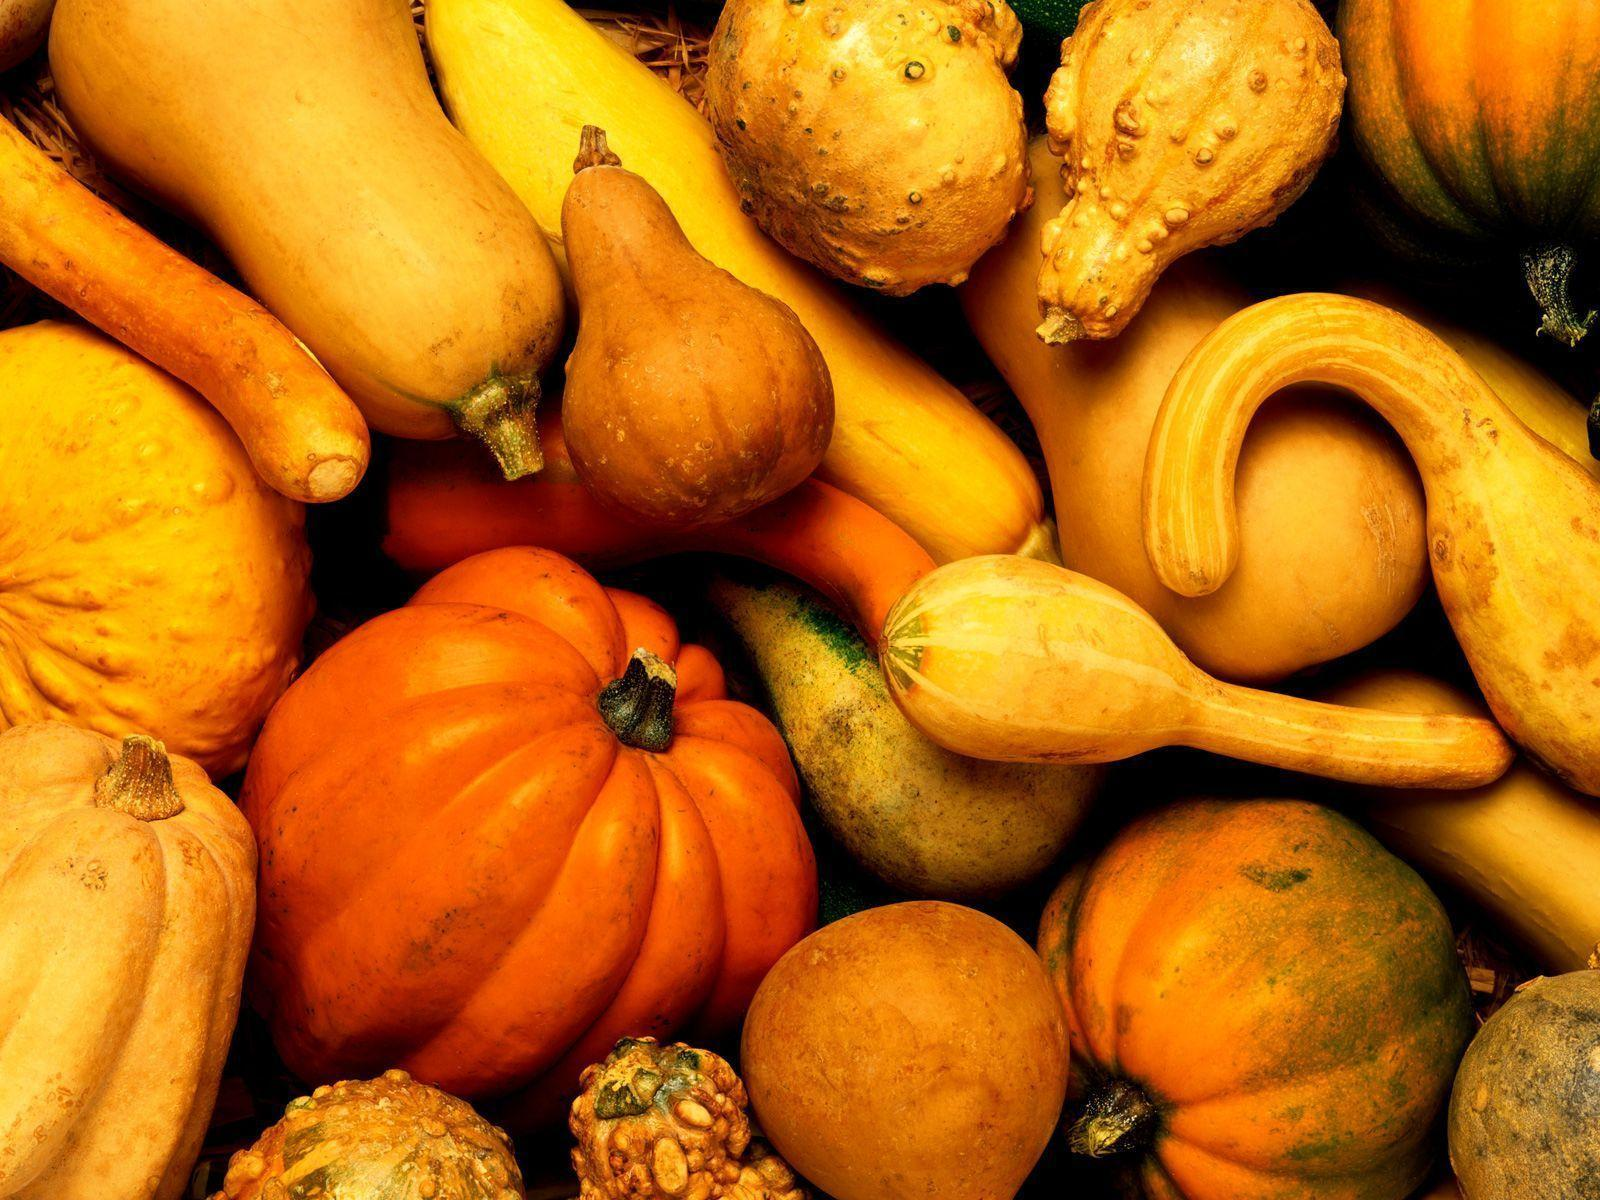 Fall Harvest Wallpaper Images Fall Harvest Wallpapers Wallpaper Cave